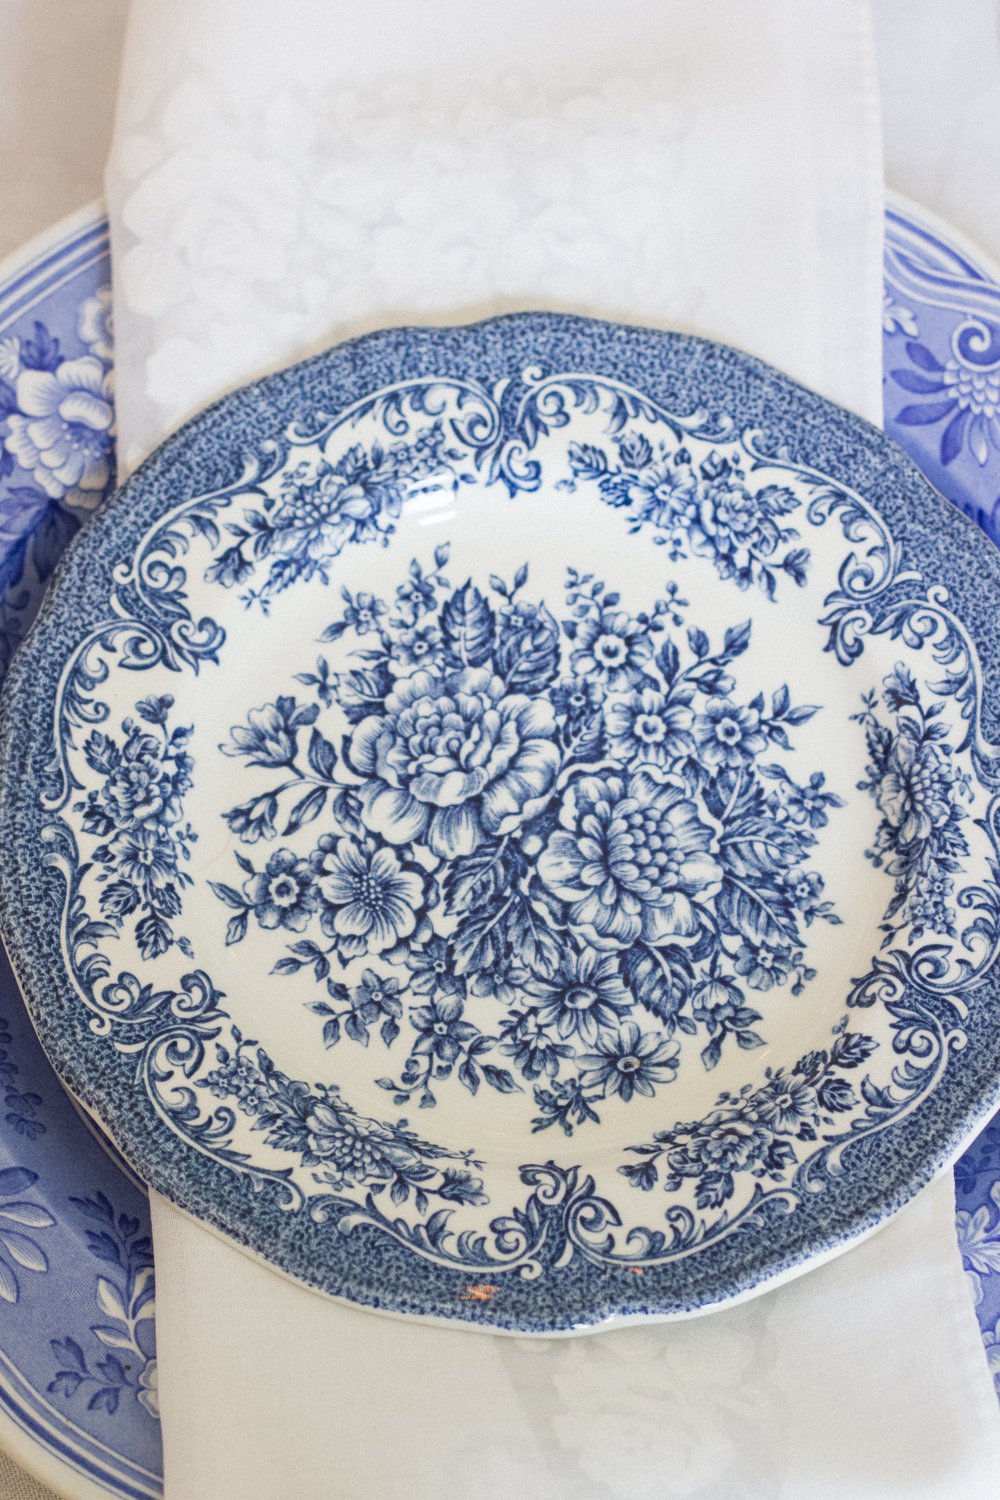 Vintage Amy Wedding Styling-Vintage Blue and White Plates To Hire-Vintage Decor Hire-Kent and Sussex